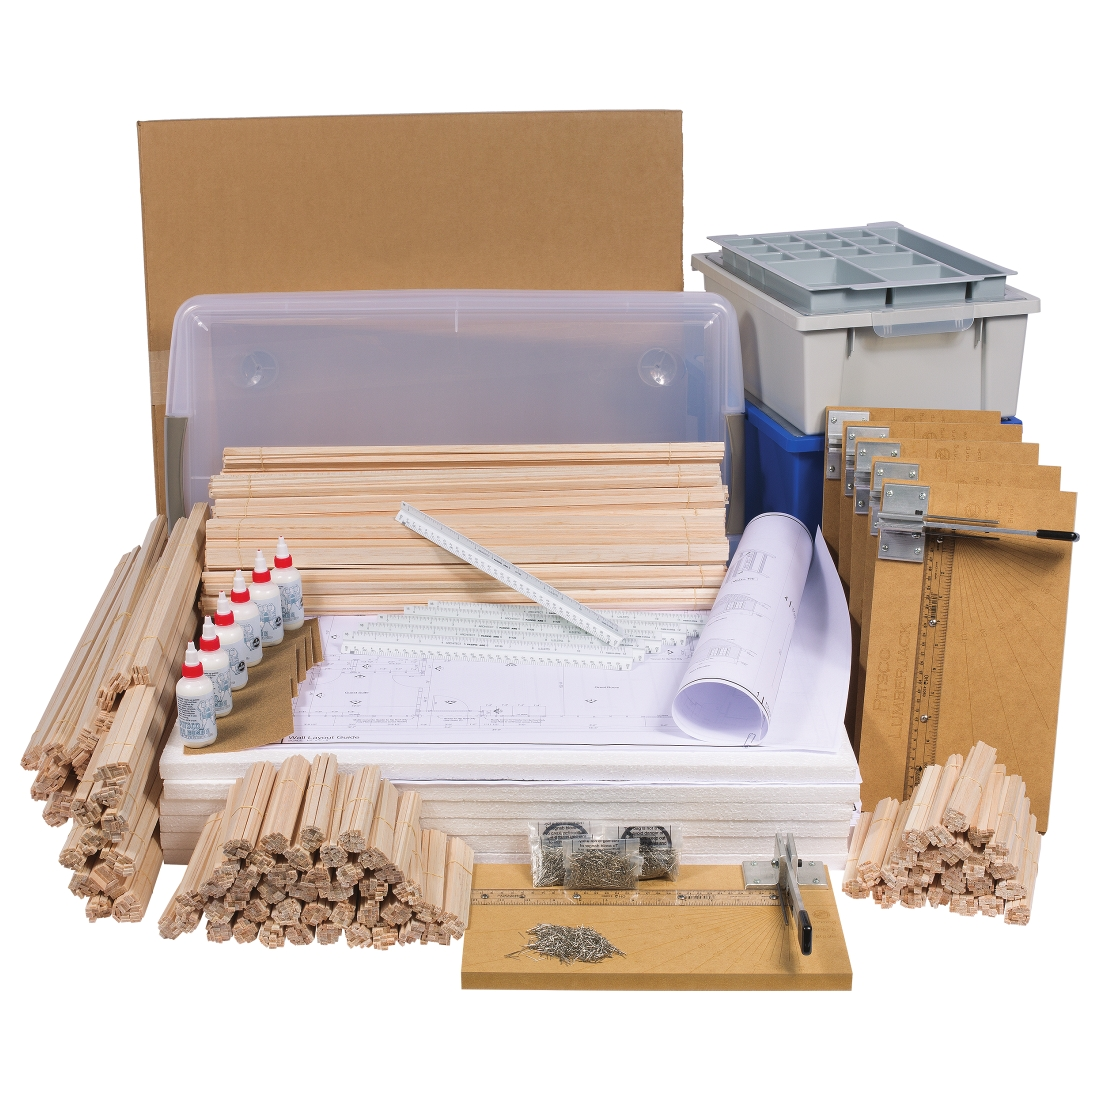 True Scale House Framing Kit Maker Project (W43182)